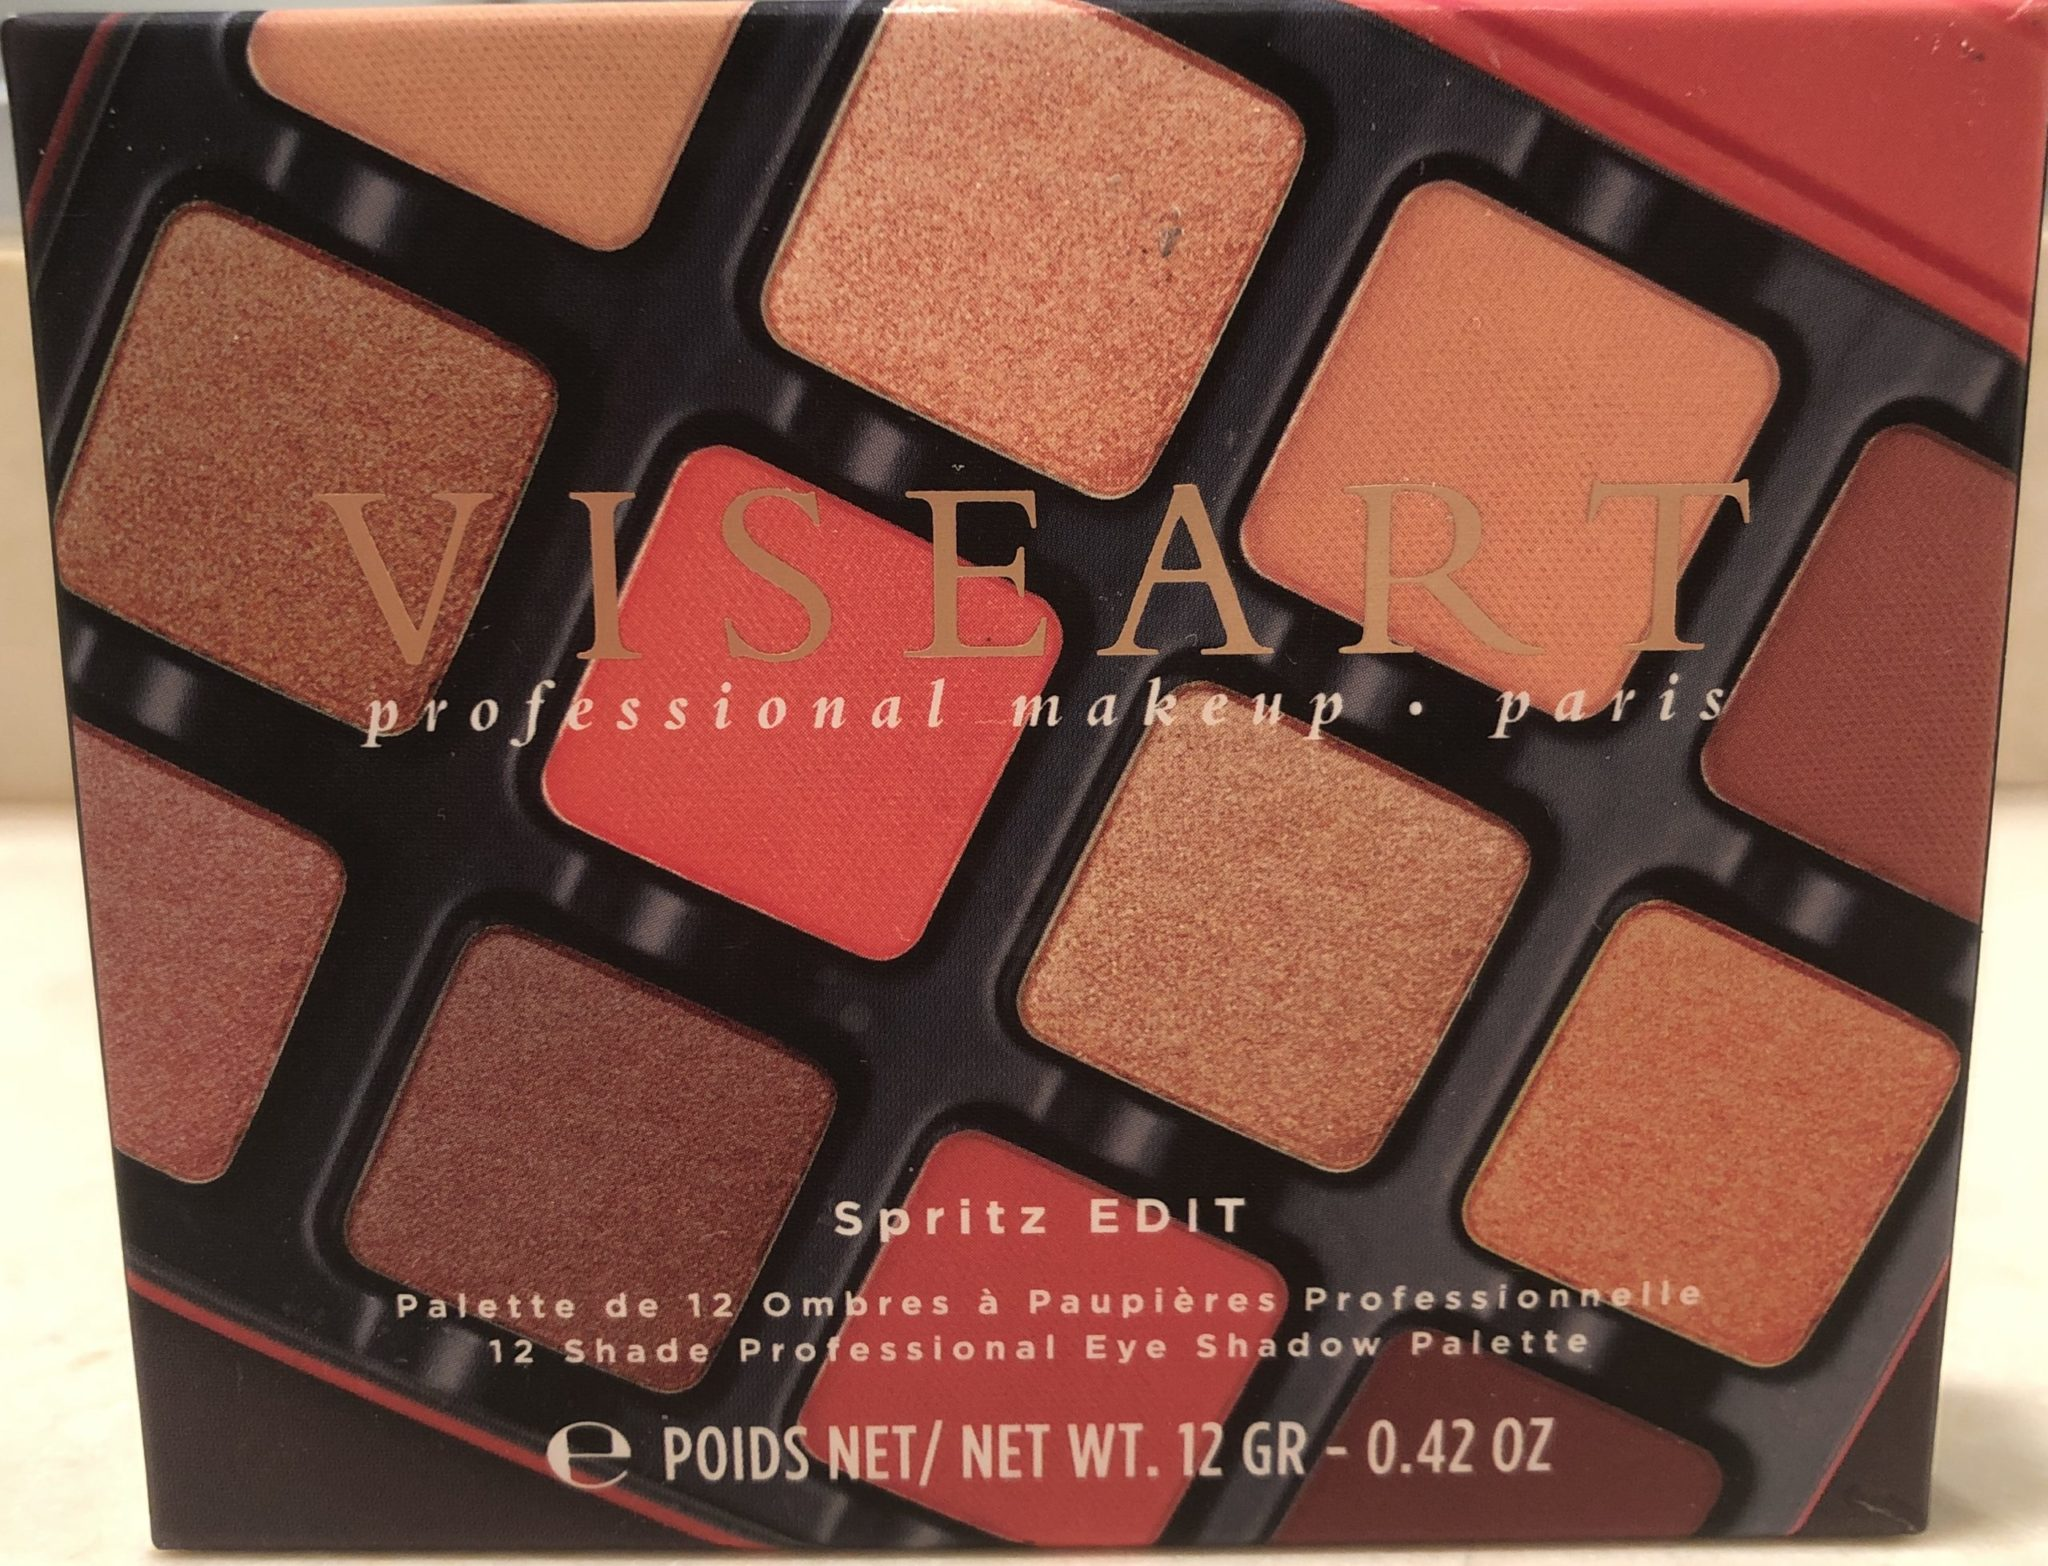 FRONT OF THE VISEART SPRITZ EDIT EYESHADOW PALETTE OUTER BOX